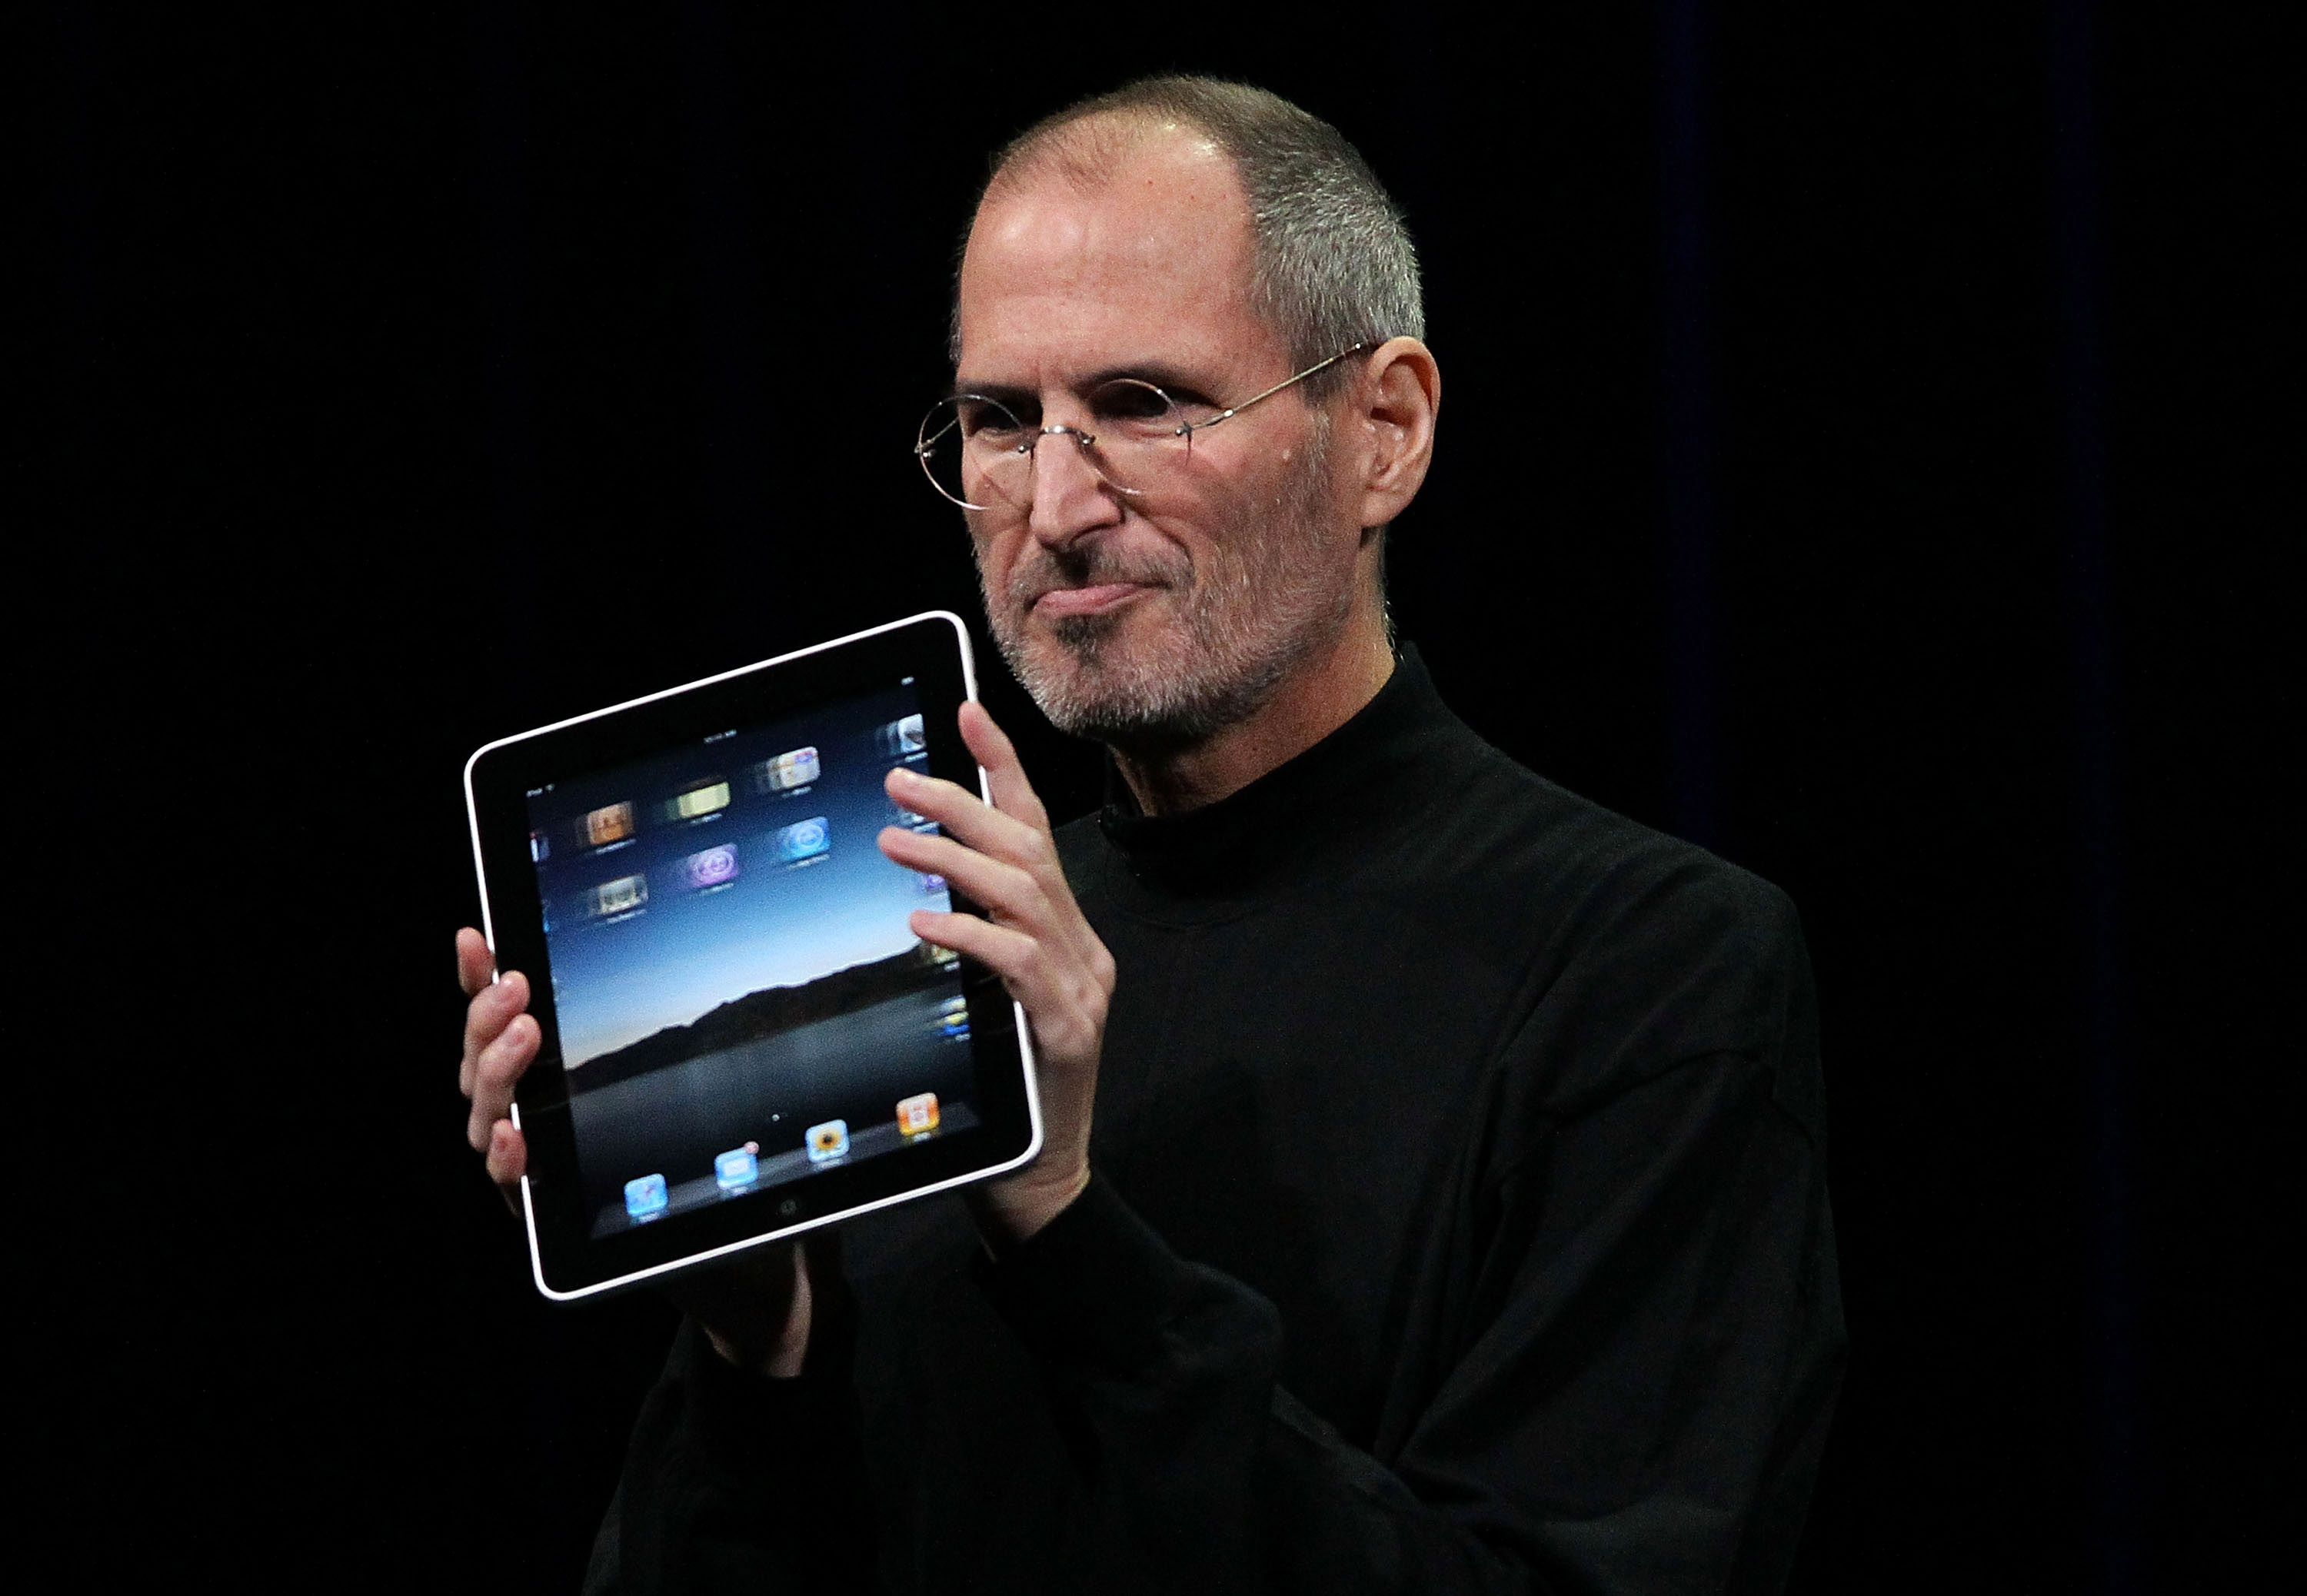 Apple introduced the iPad in 2010/